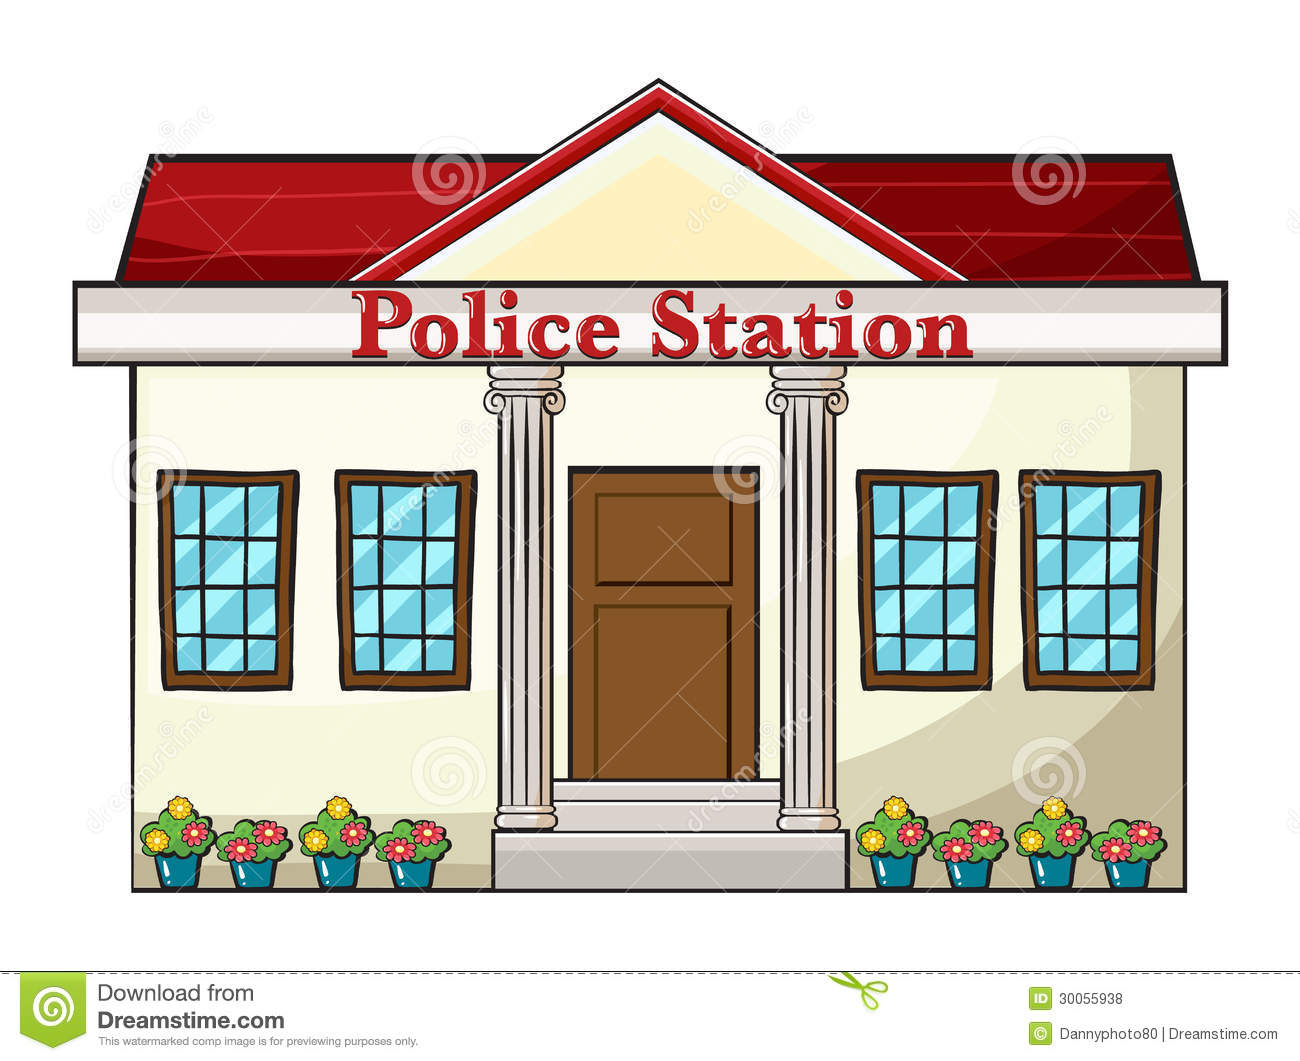 fire station building coloring pages - photo#34